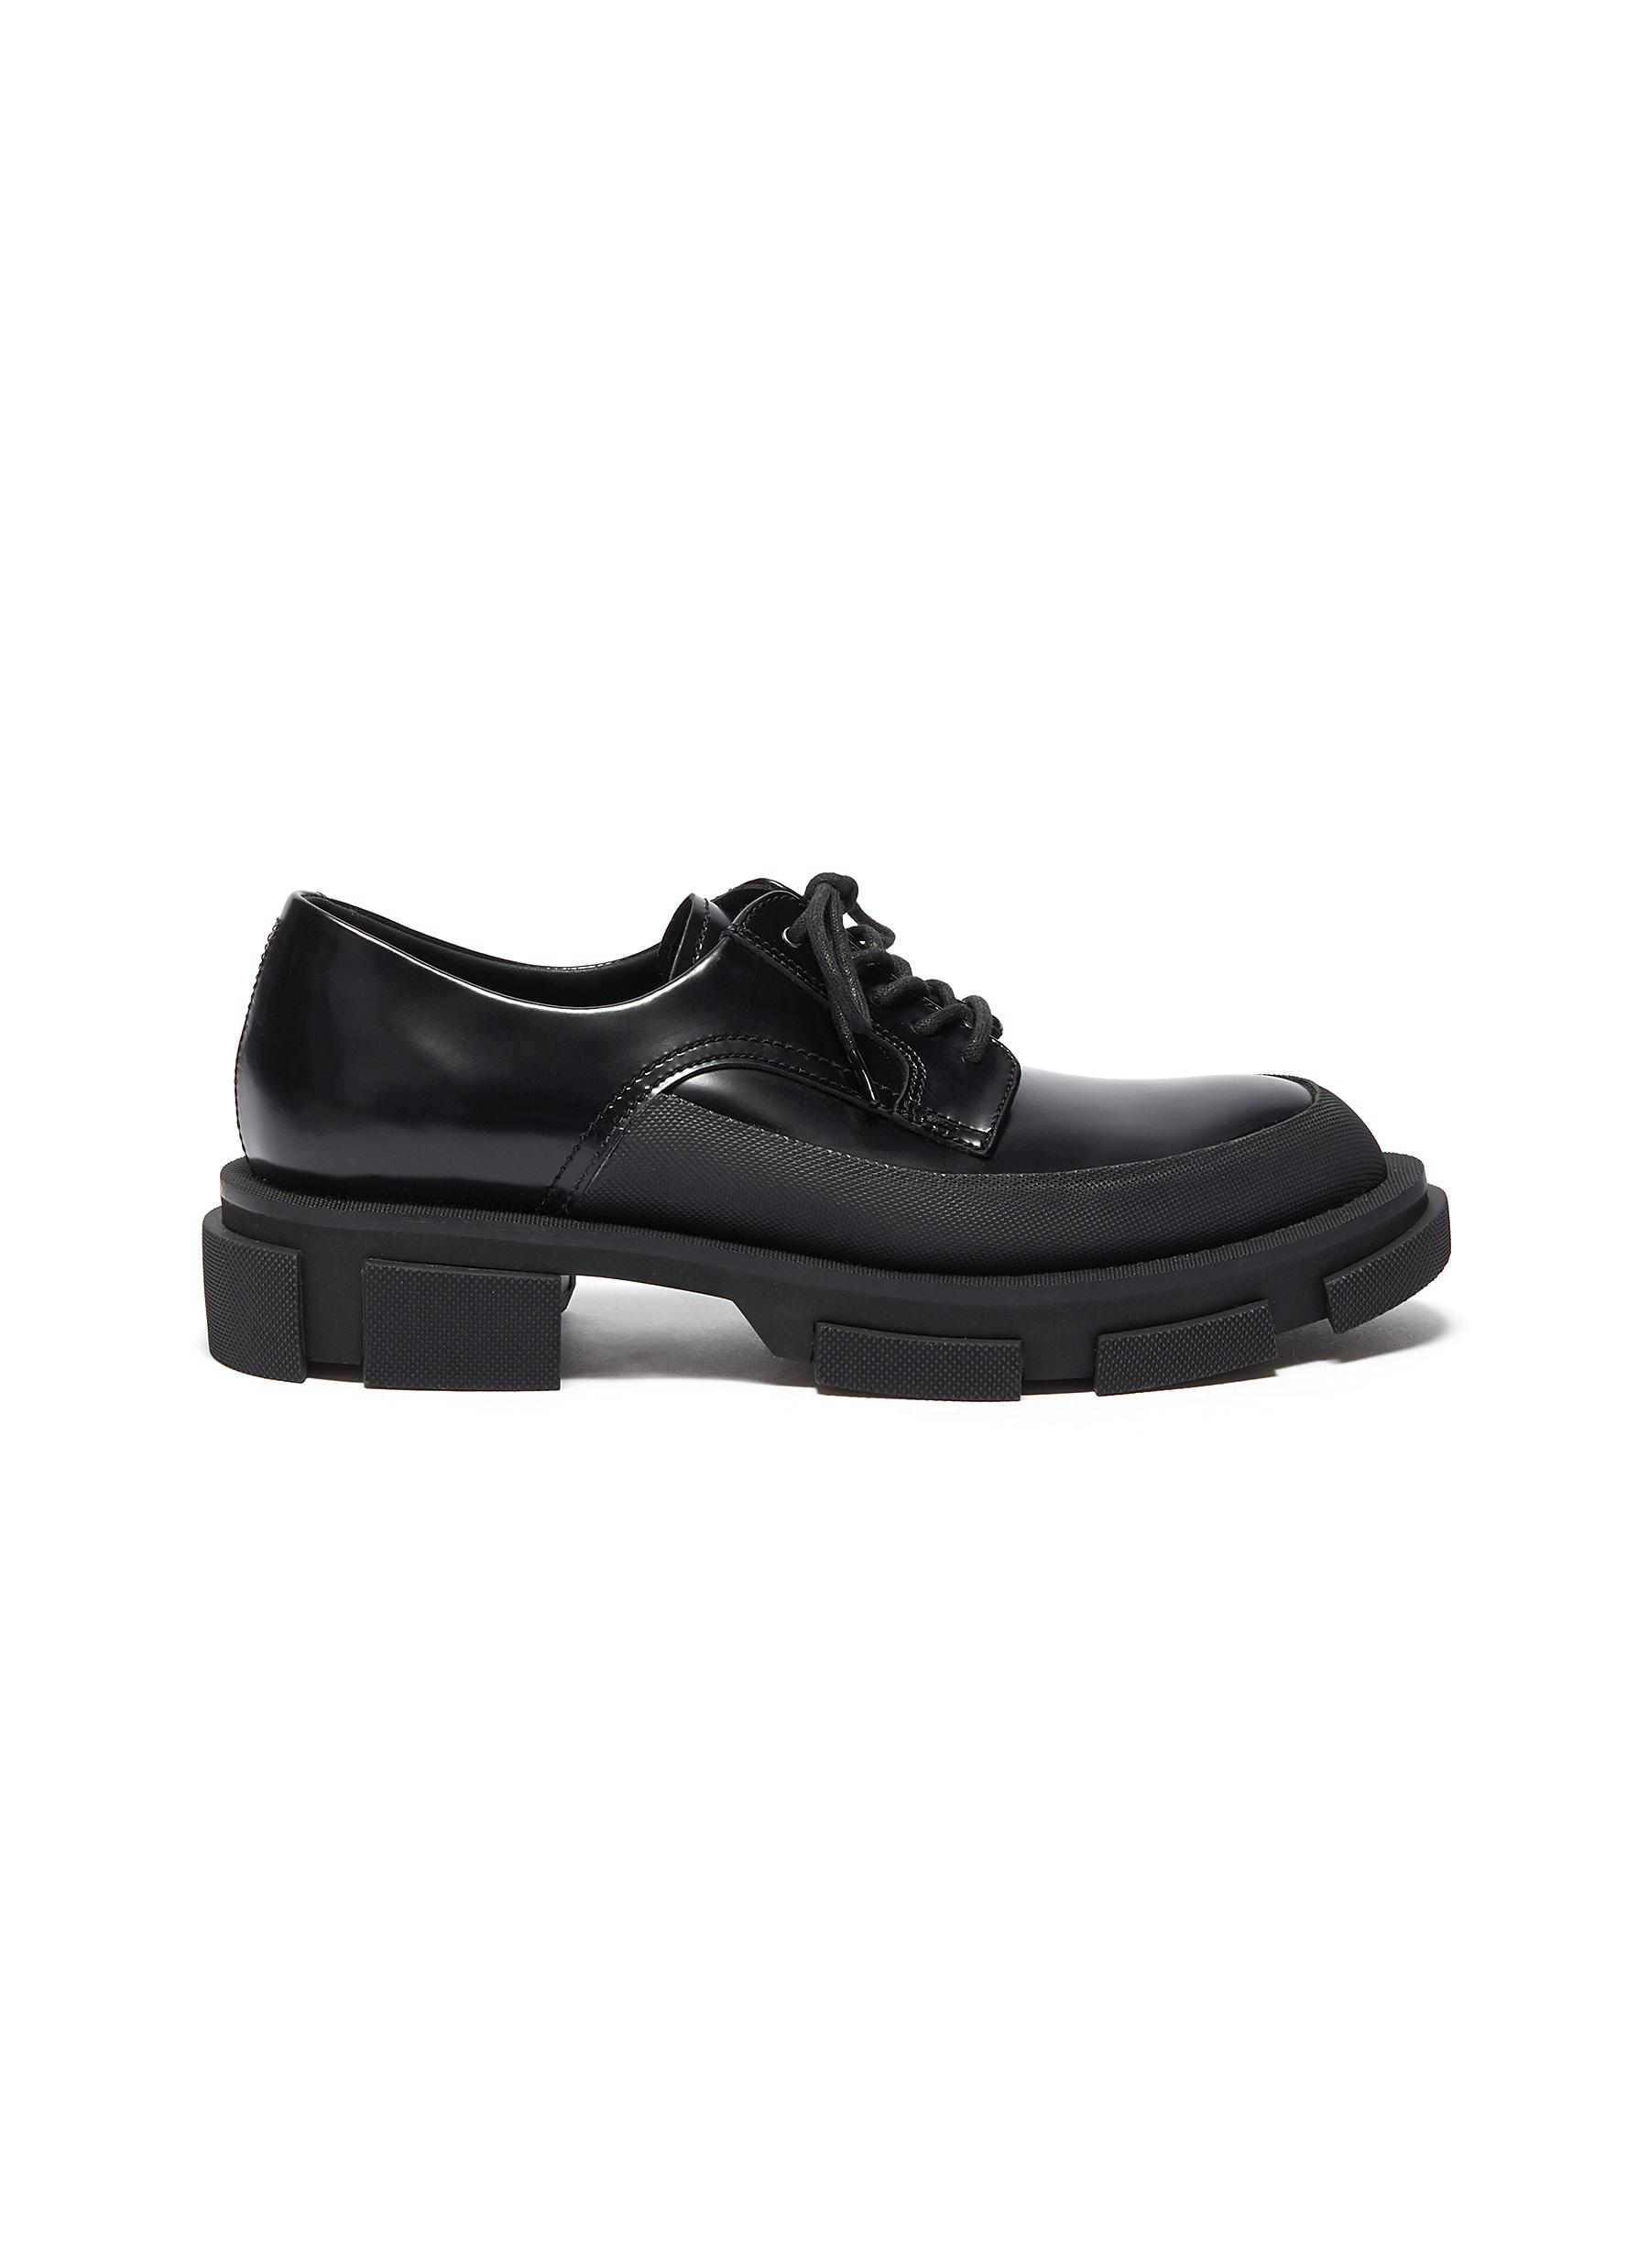 Both Flats Gao Derby leather shoes